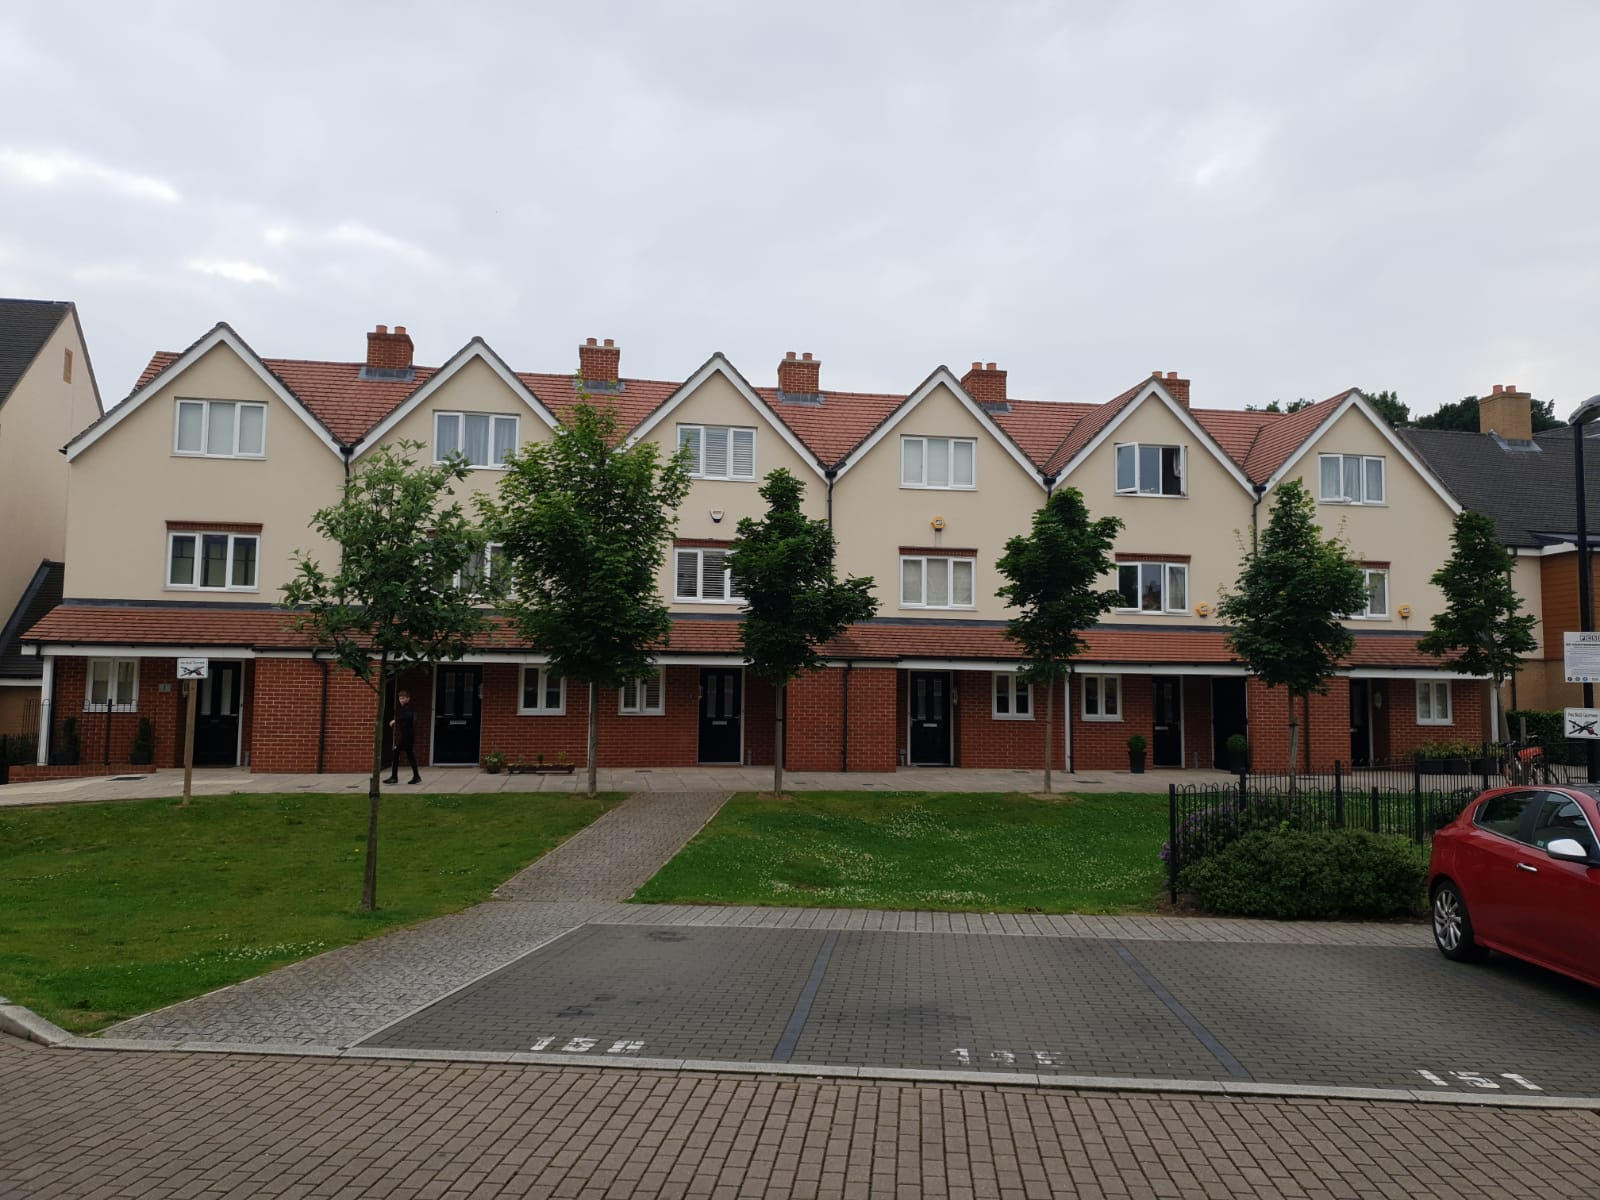 Houses in Hayes